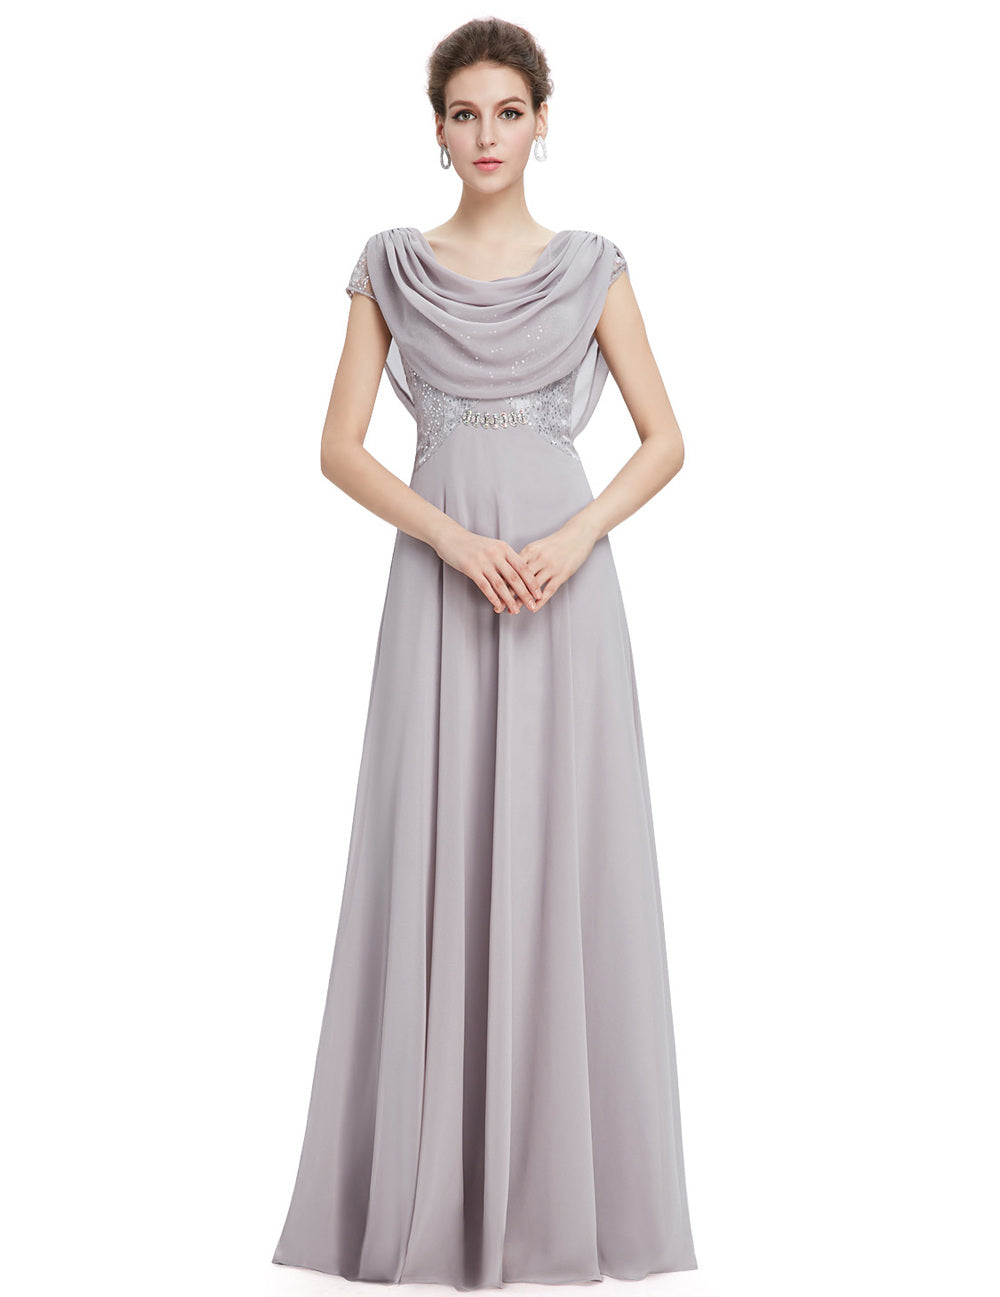 32e0565636407 Purple Evening Long Dresses Special Occasion 2018 Double Cowl Neck Beads  Formal Maxi Fashion Plus Size EP09989 Elegant dress